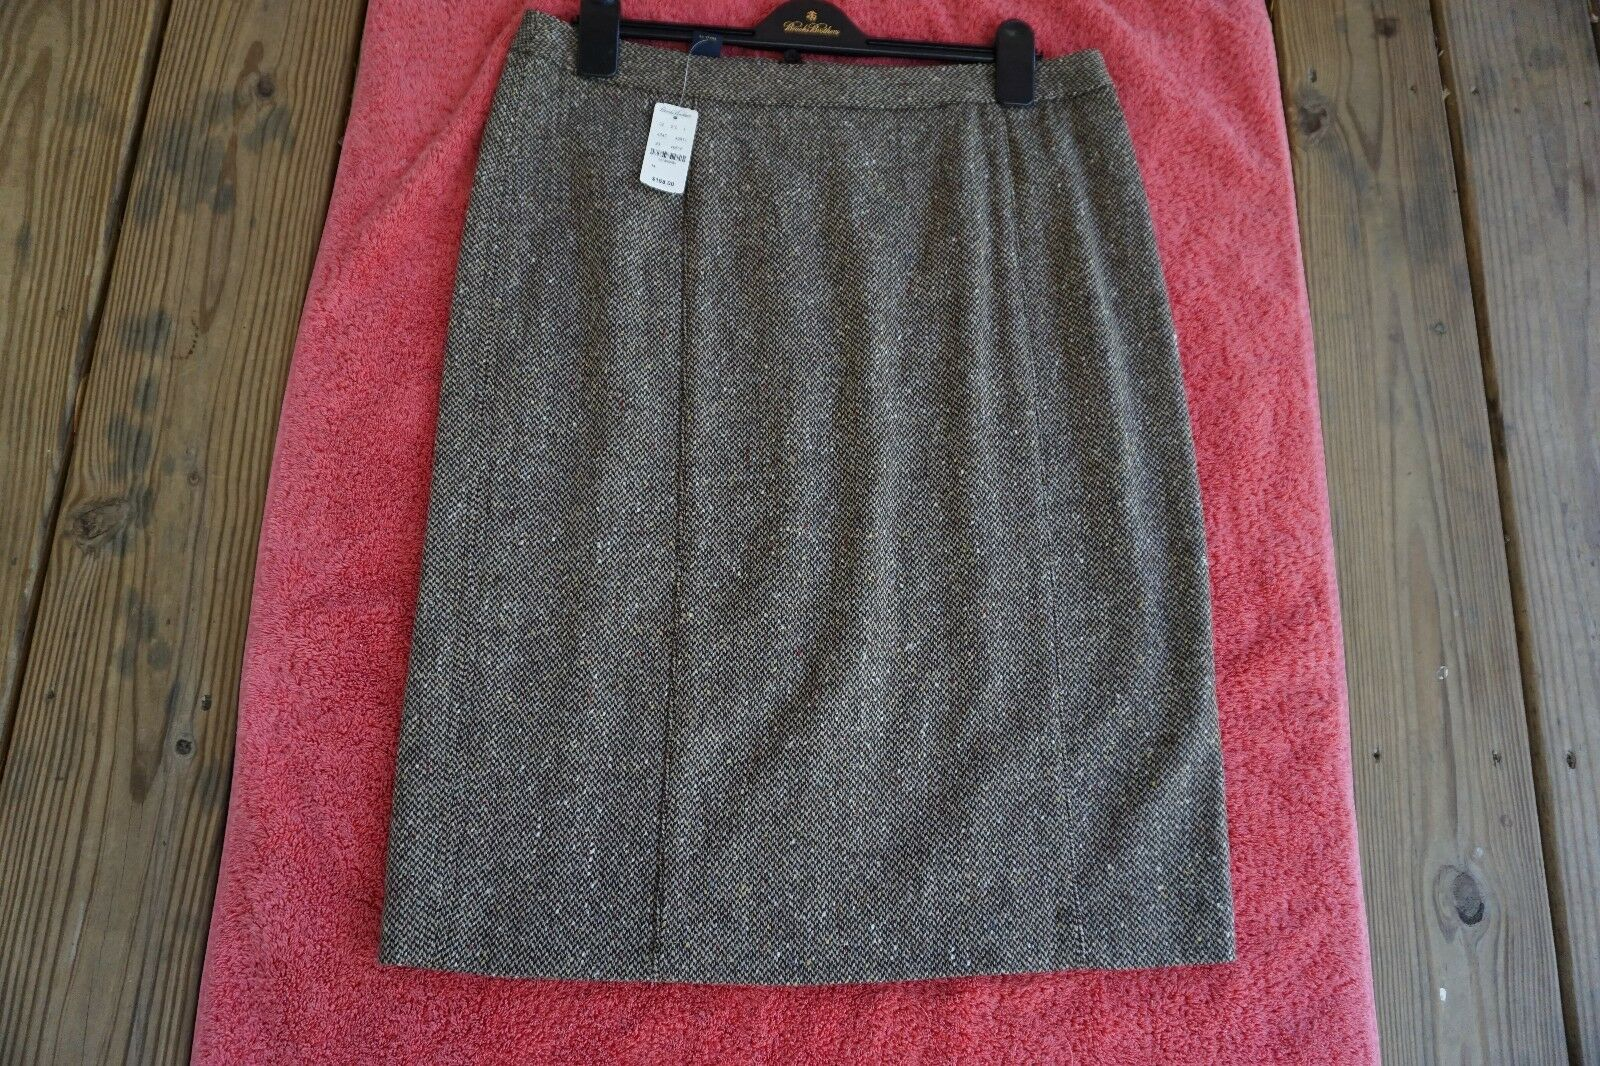 BROOKS BredHERS FLEECE NWT  168 WOVEN IN ITALY WOOL TWEED FULLY LINED SKIRT 14